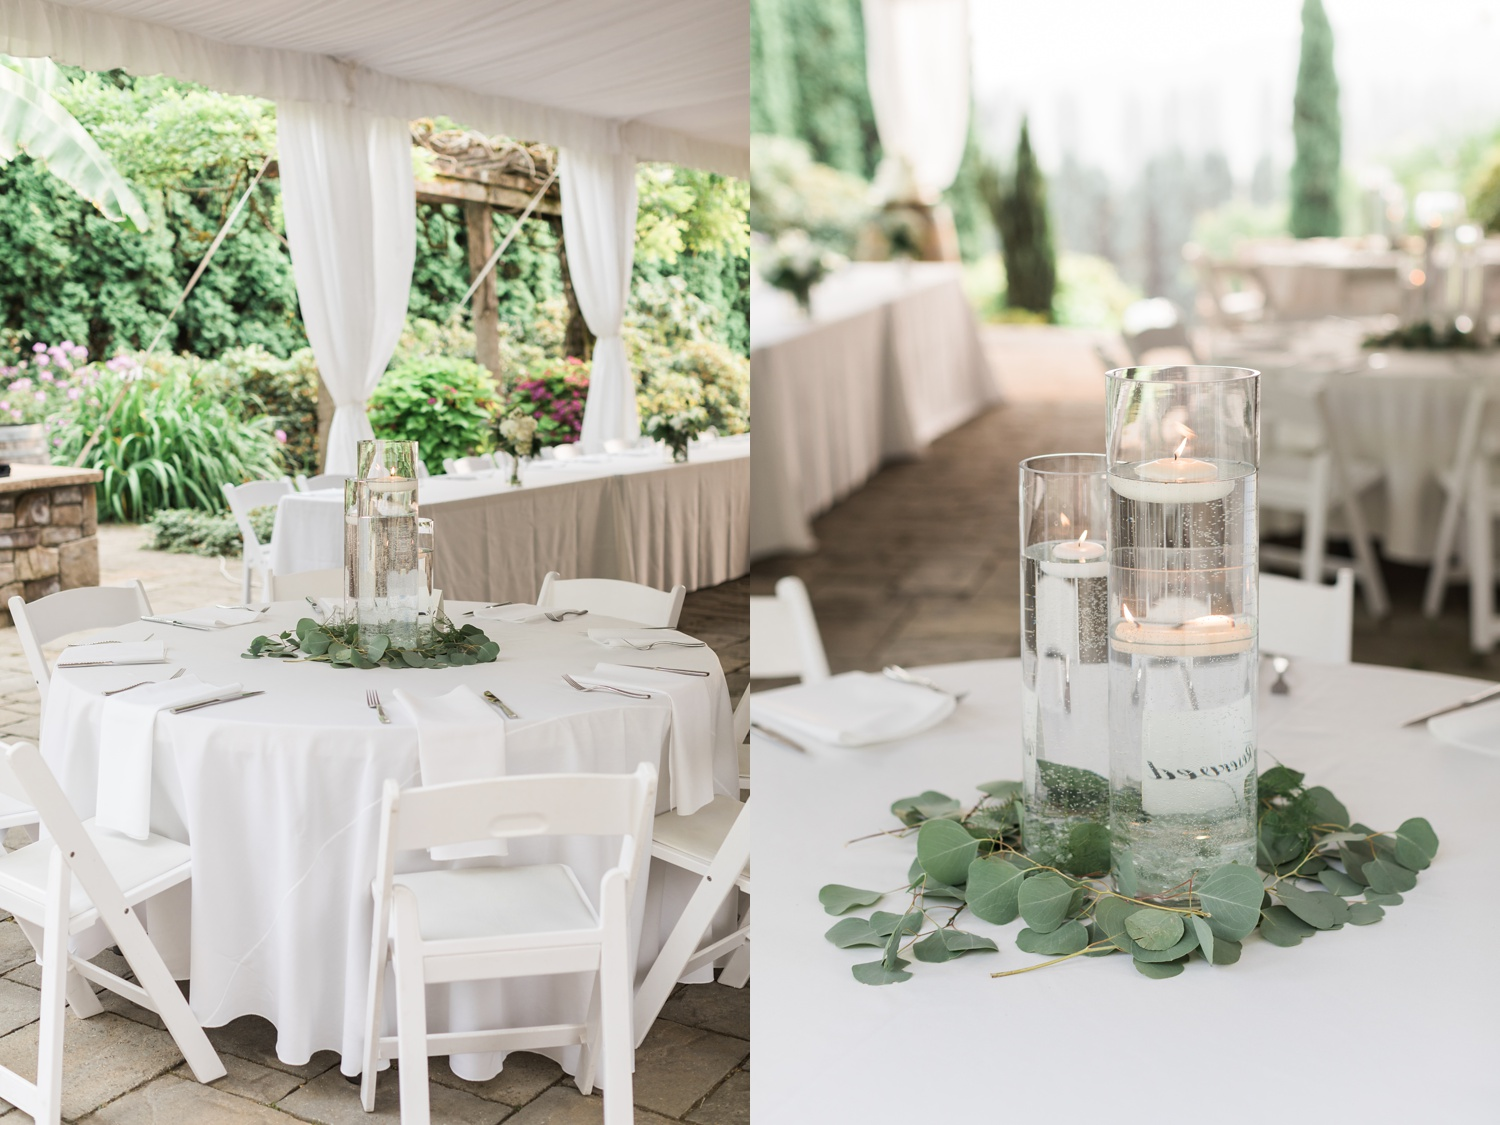 A photo of a reception area and table decor at a wedding at Chateau Lill in Woodinville, a wedding venue near Seattle, WA.   Joanna Monger Photography   Seattle & Snohomish Photographer